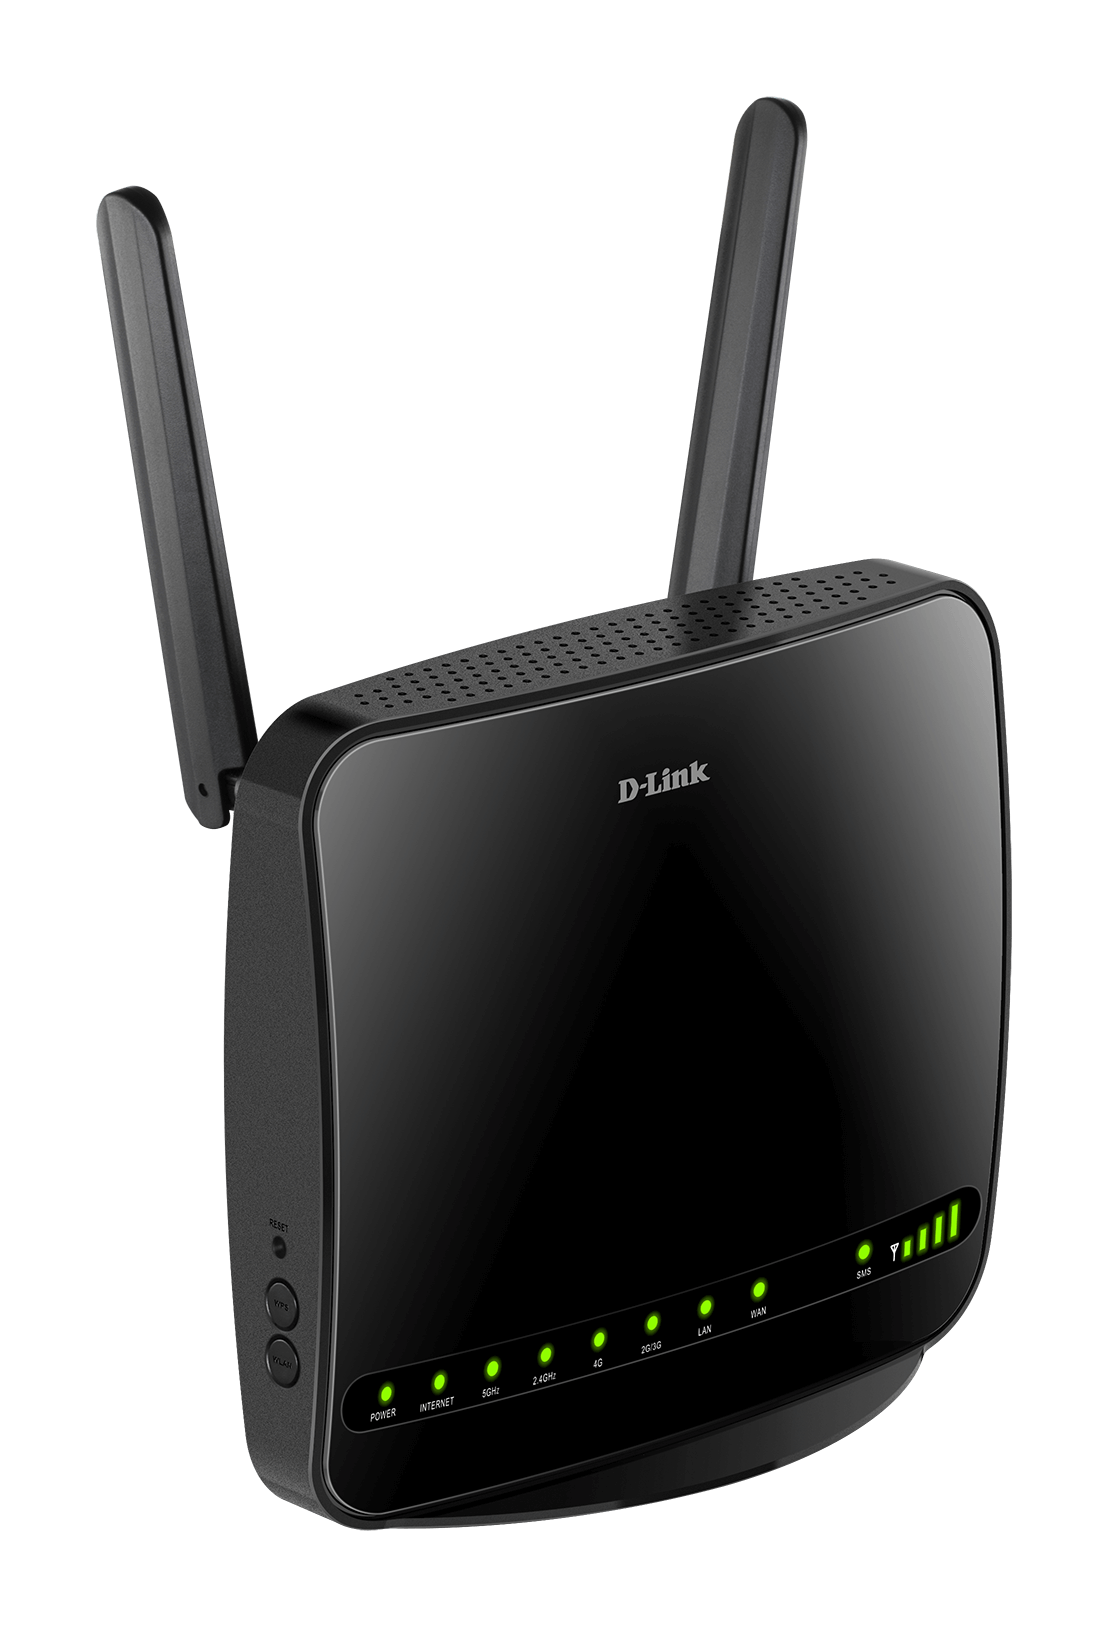 DWR-953 B1 Wireless AC1200 4G LTE Multi-WAN Router Image Side Right